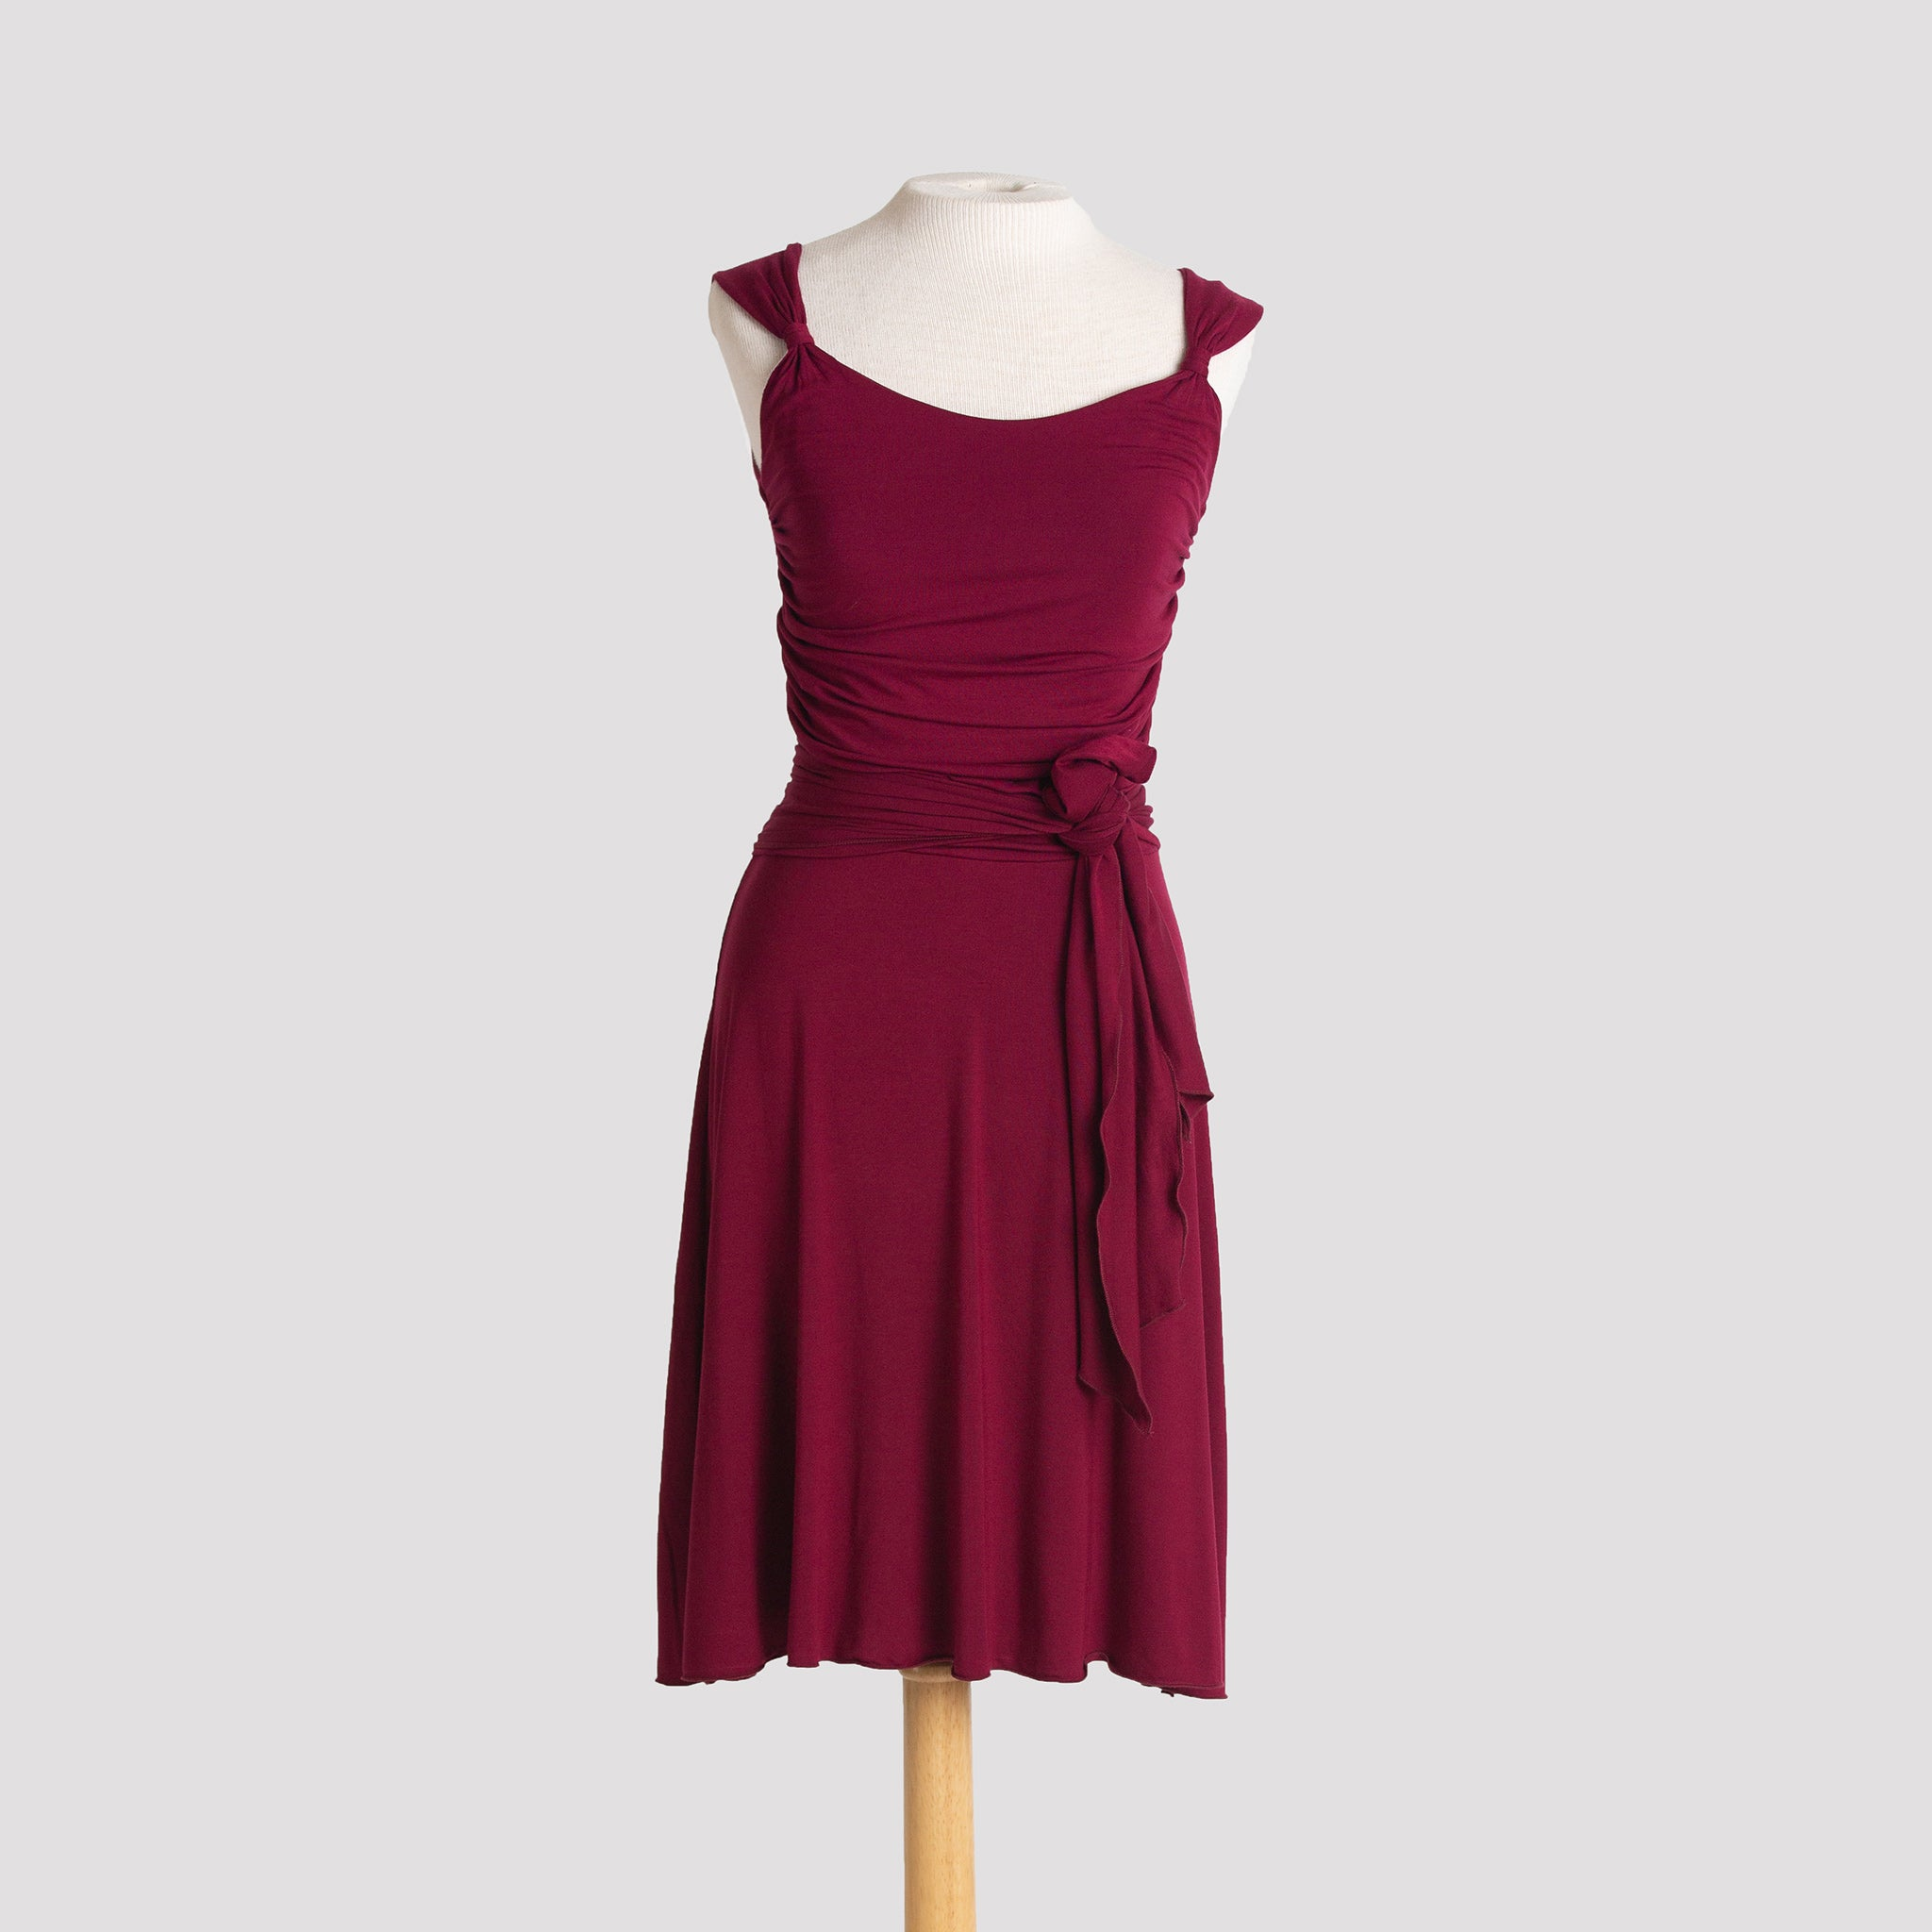 Audrey Dress in Burgundy with sash